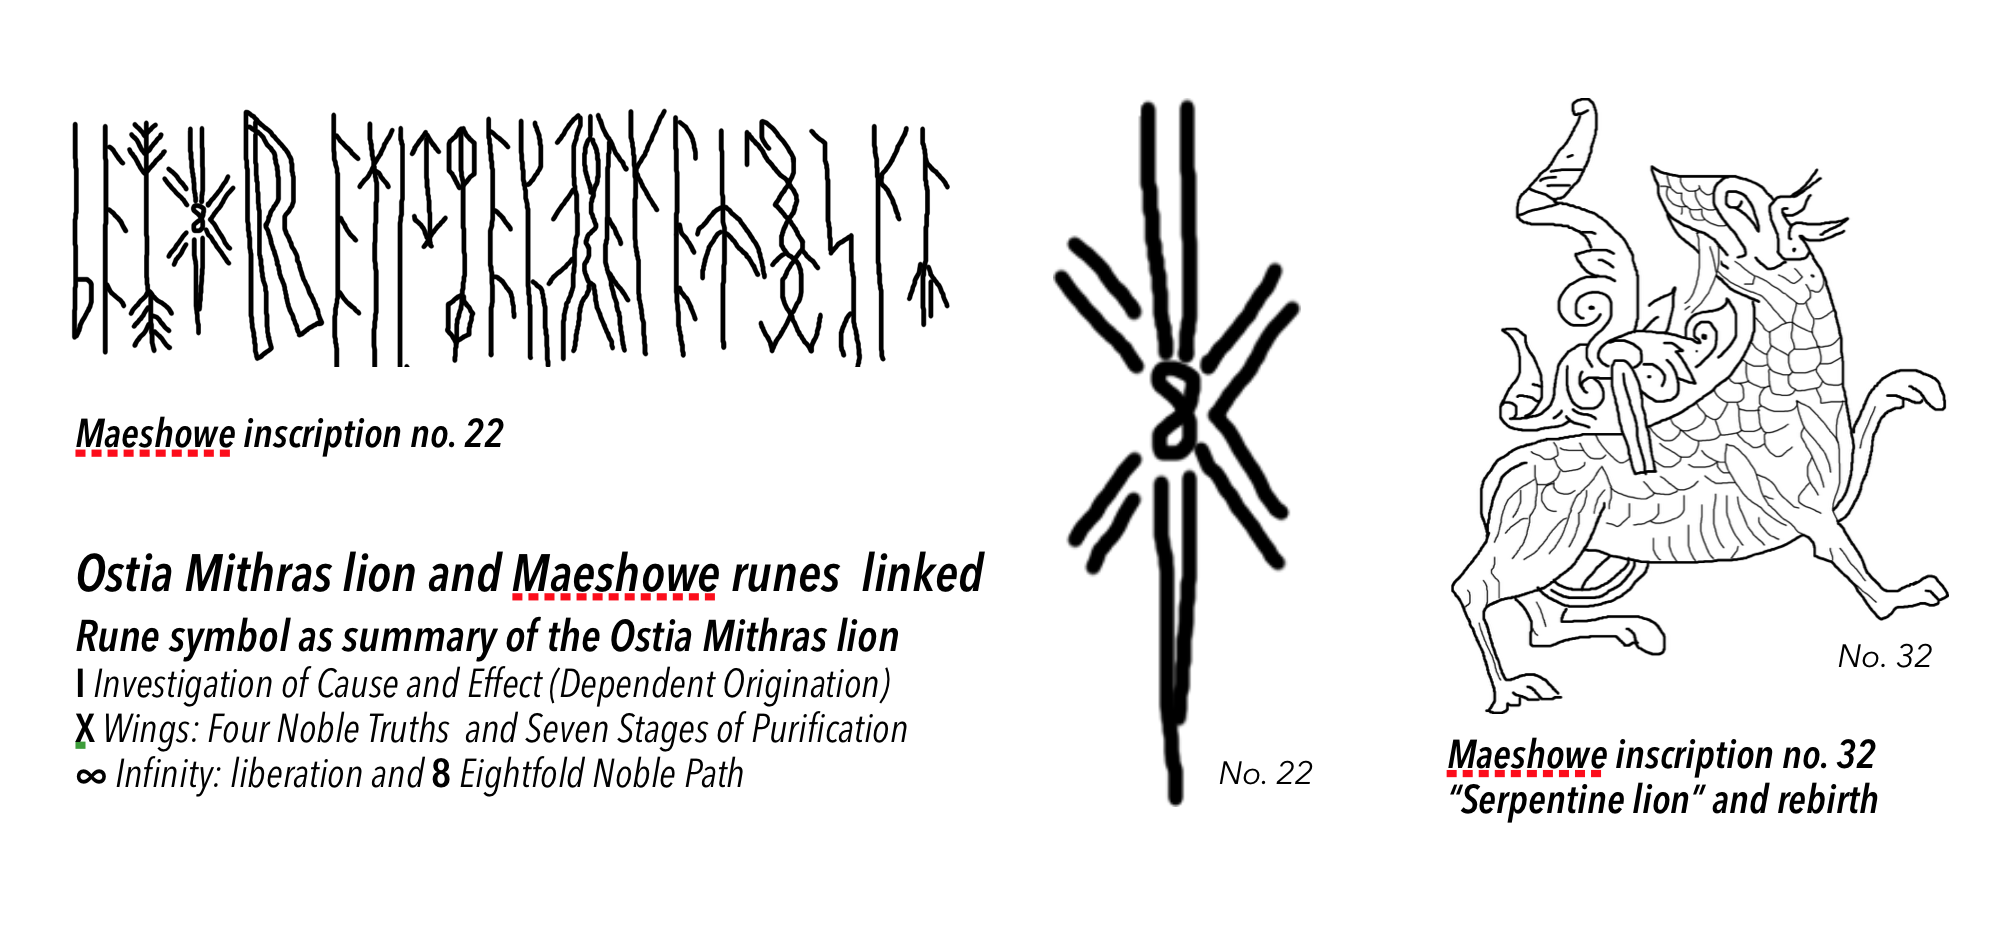 Maeshowe rune symbol as summary of the Ostia Mithras lion